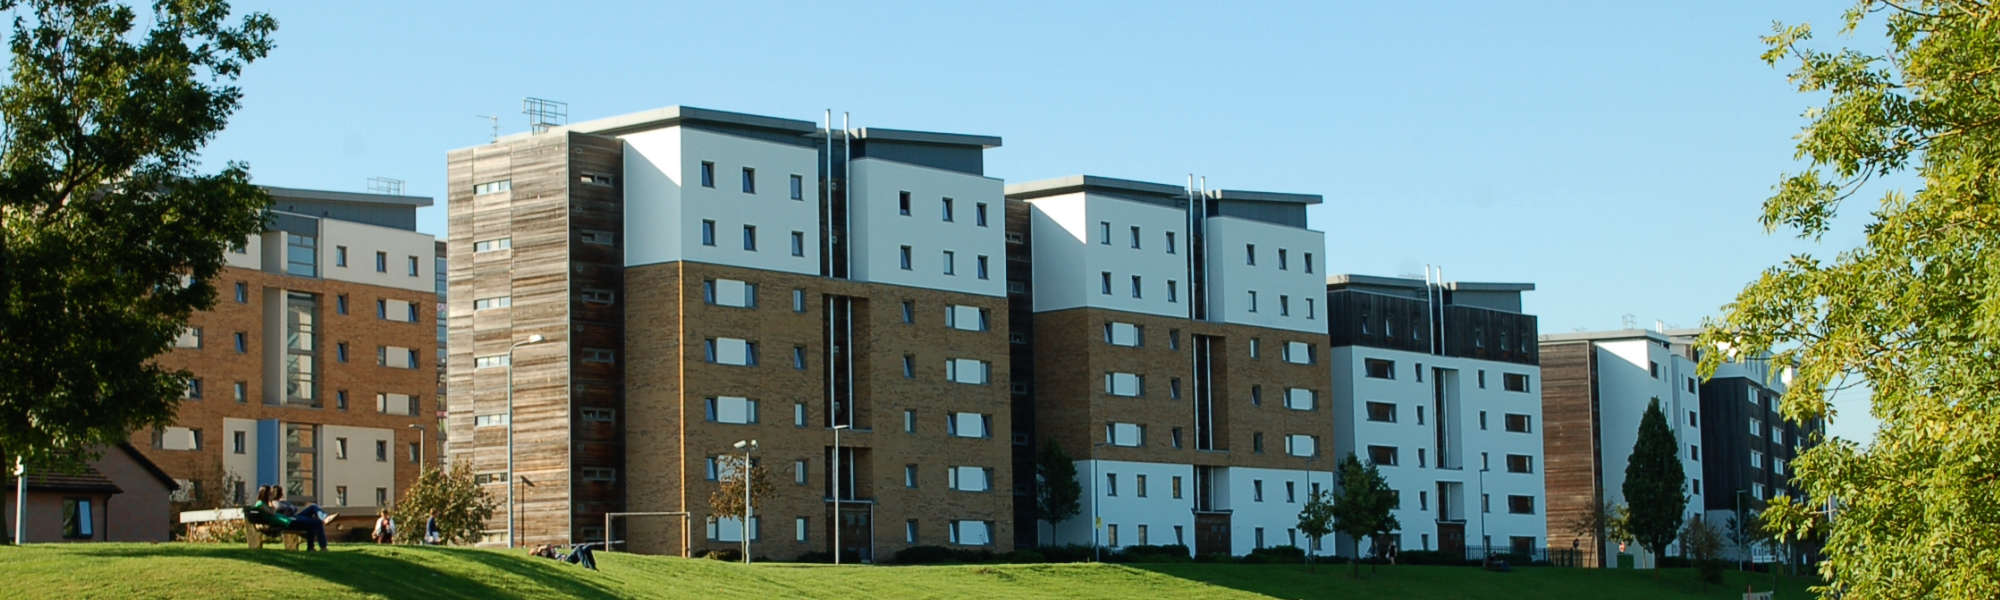 PCEs Student accommodation project in Bristol